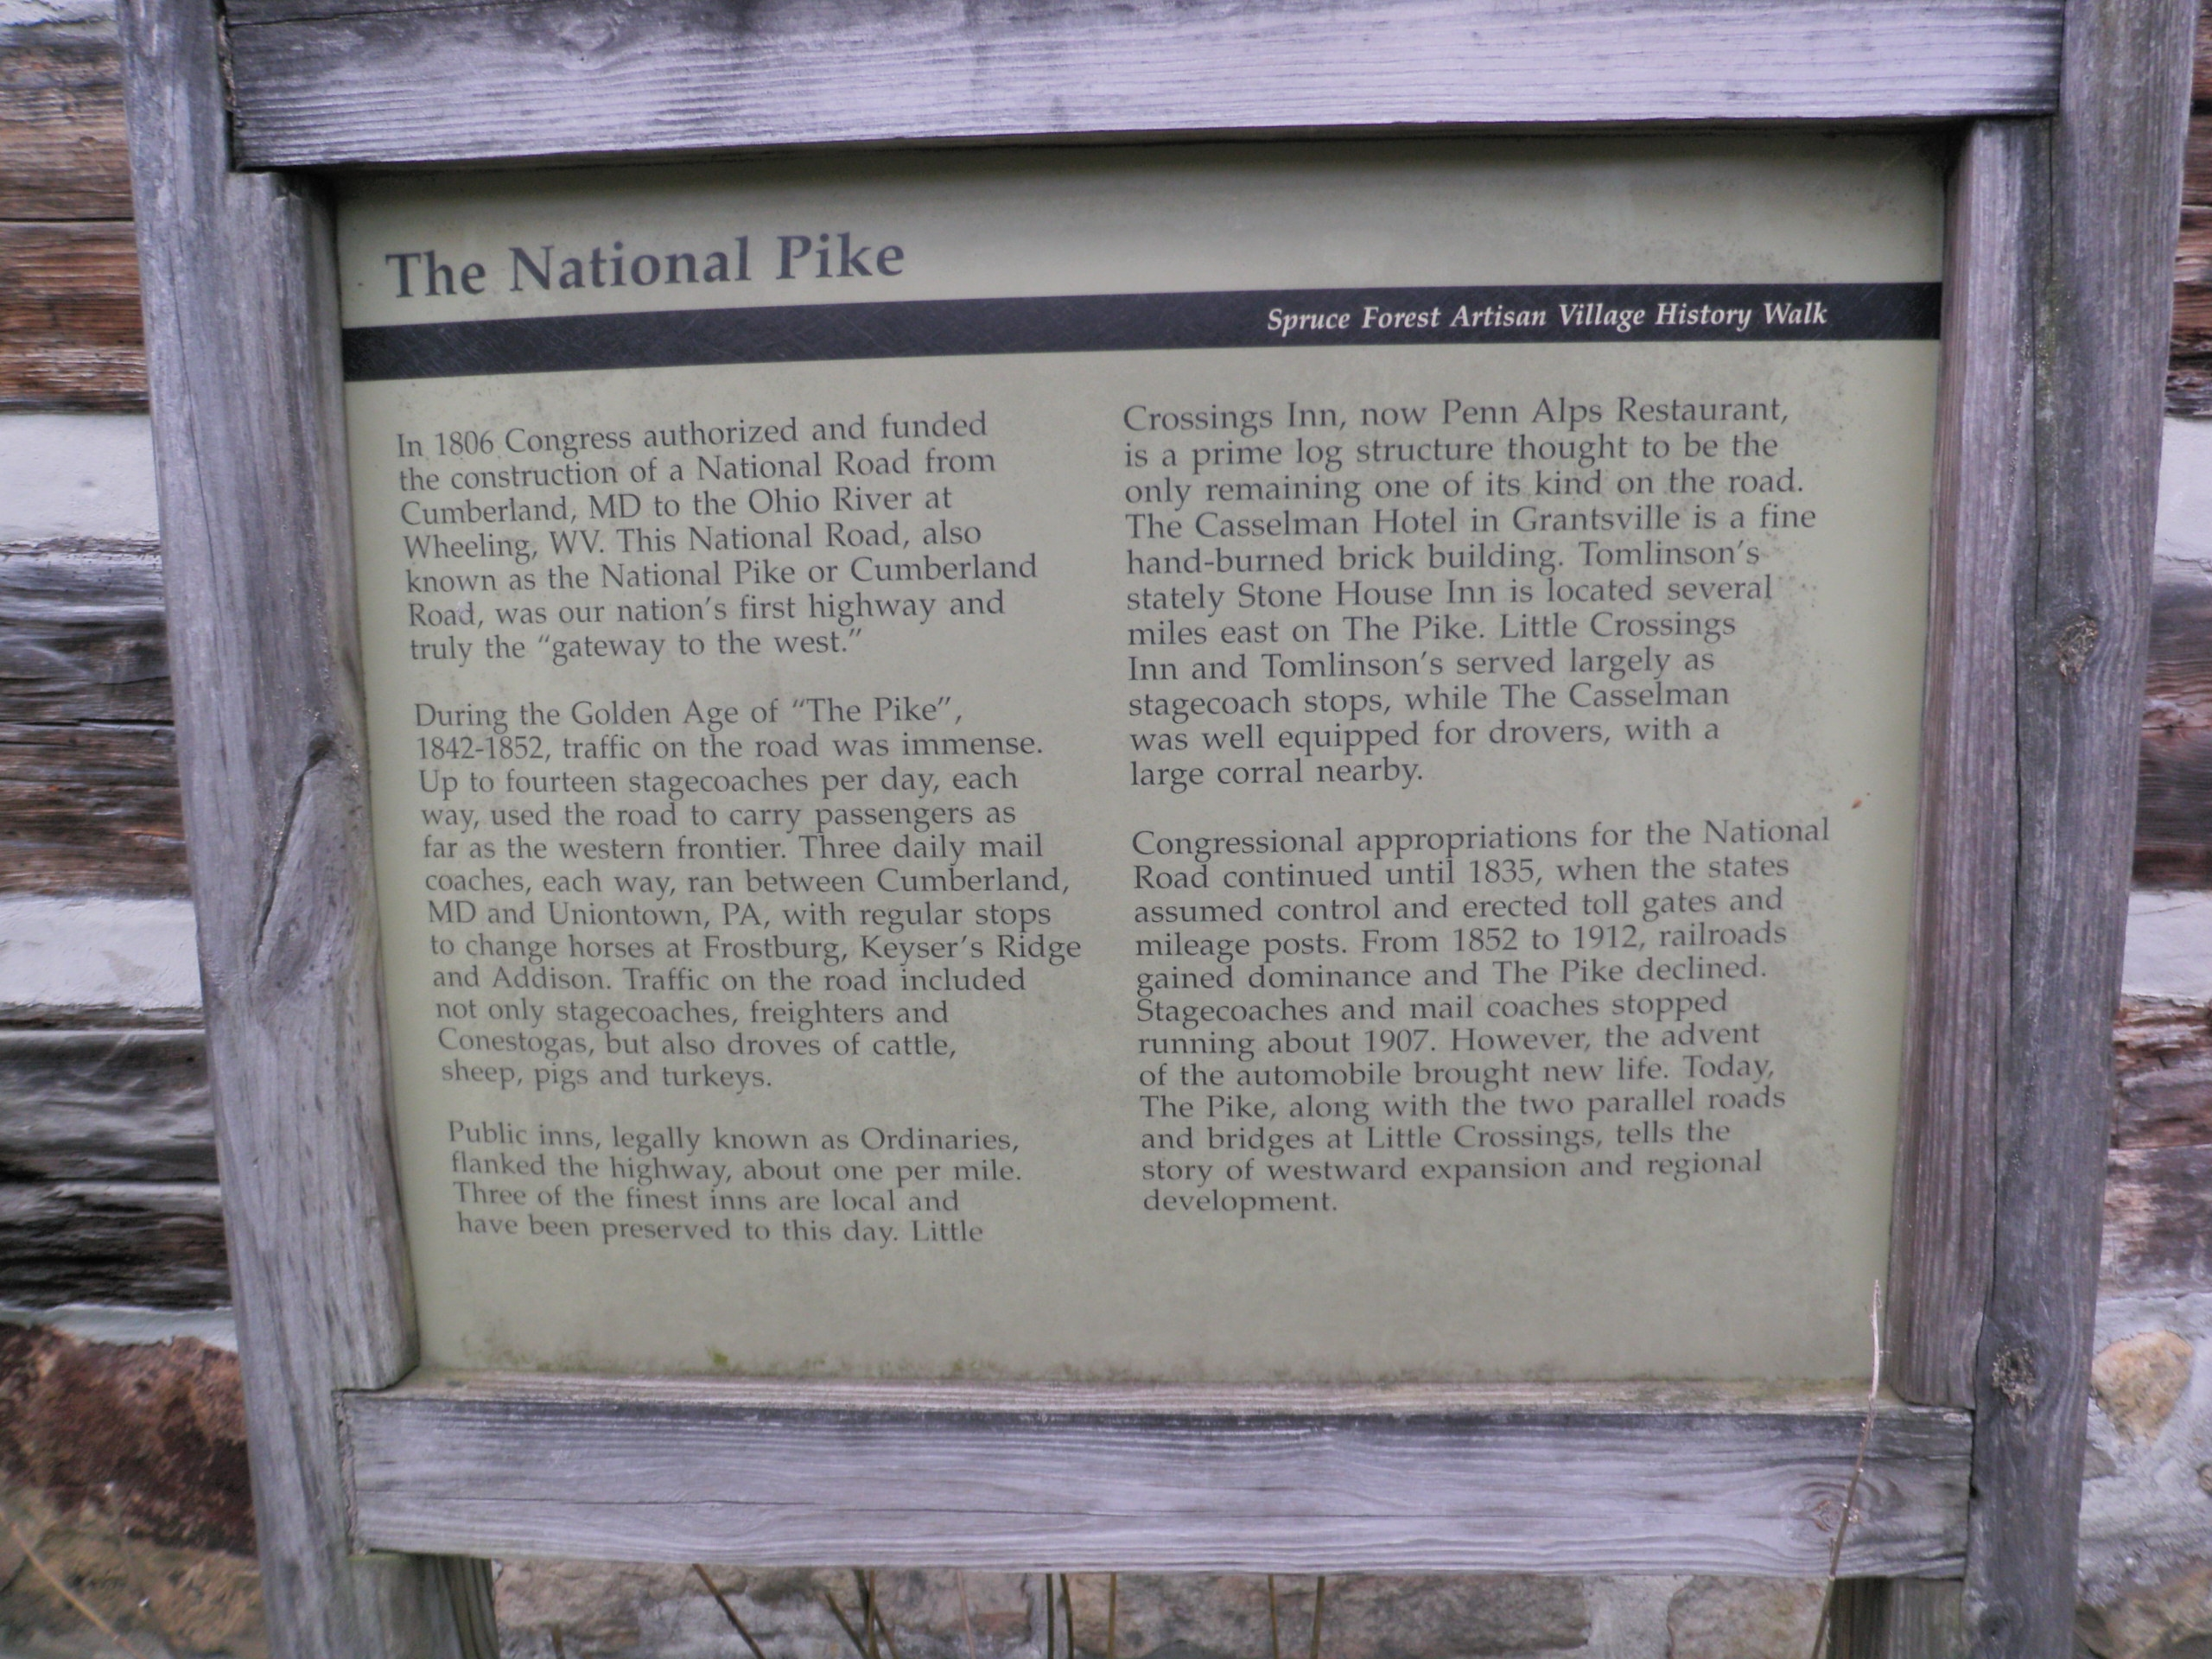 The National Pike Marker